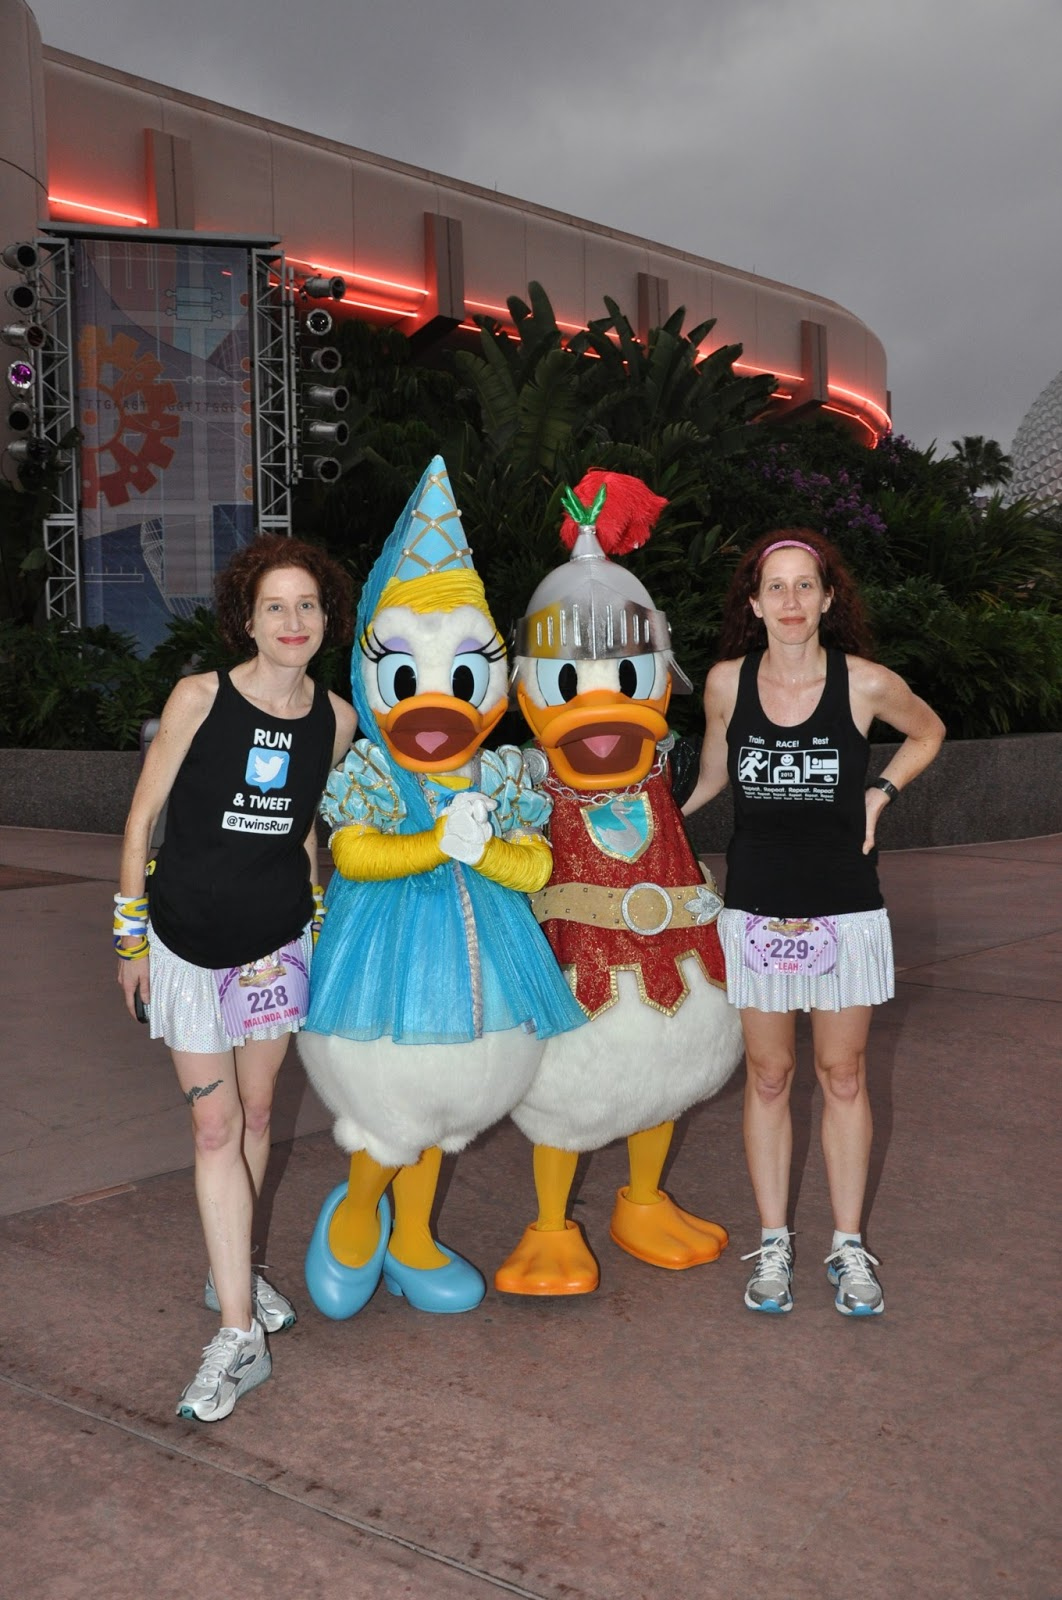 Twins Run In Our Family Twins Run The Rundisney 2013